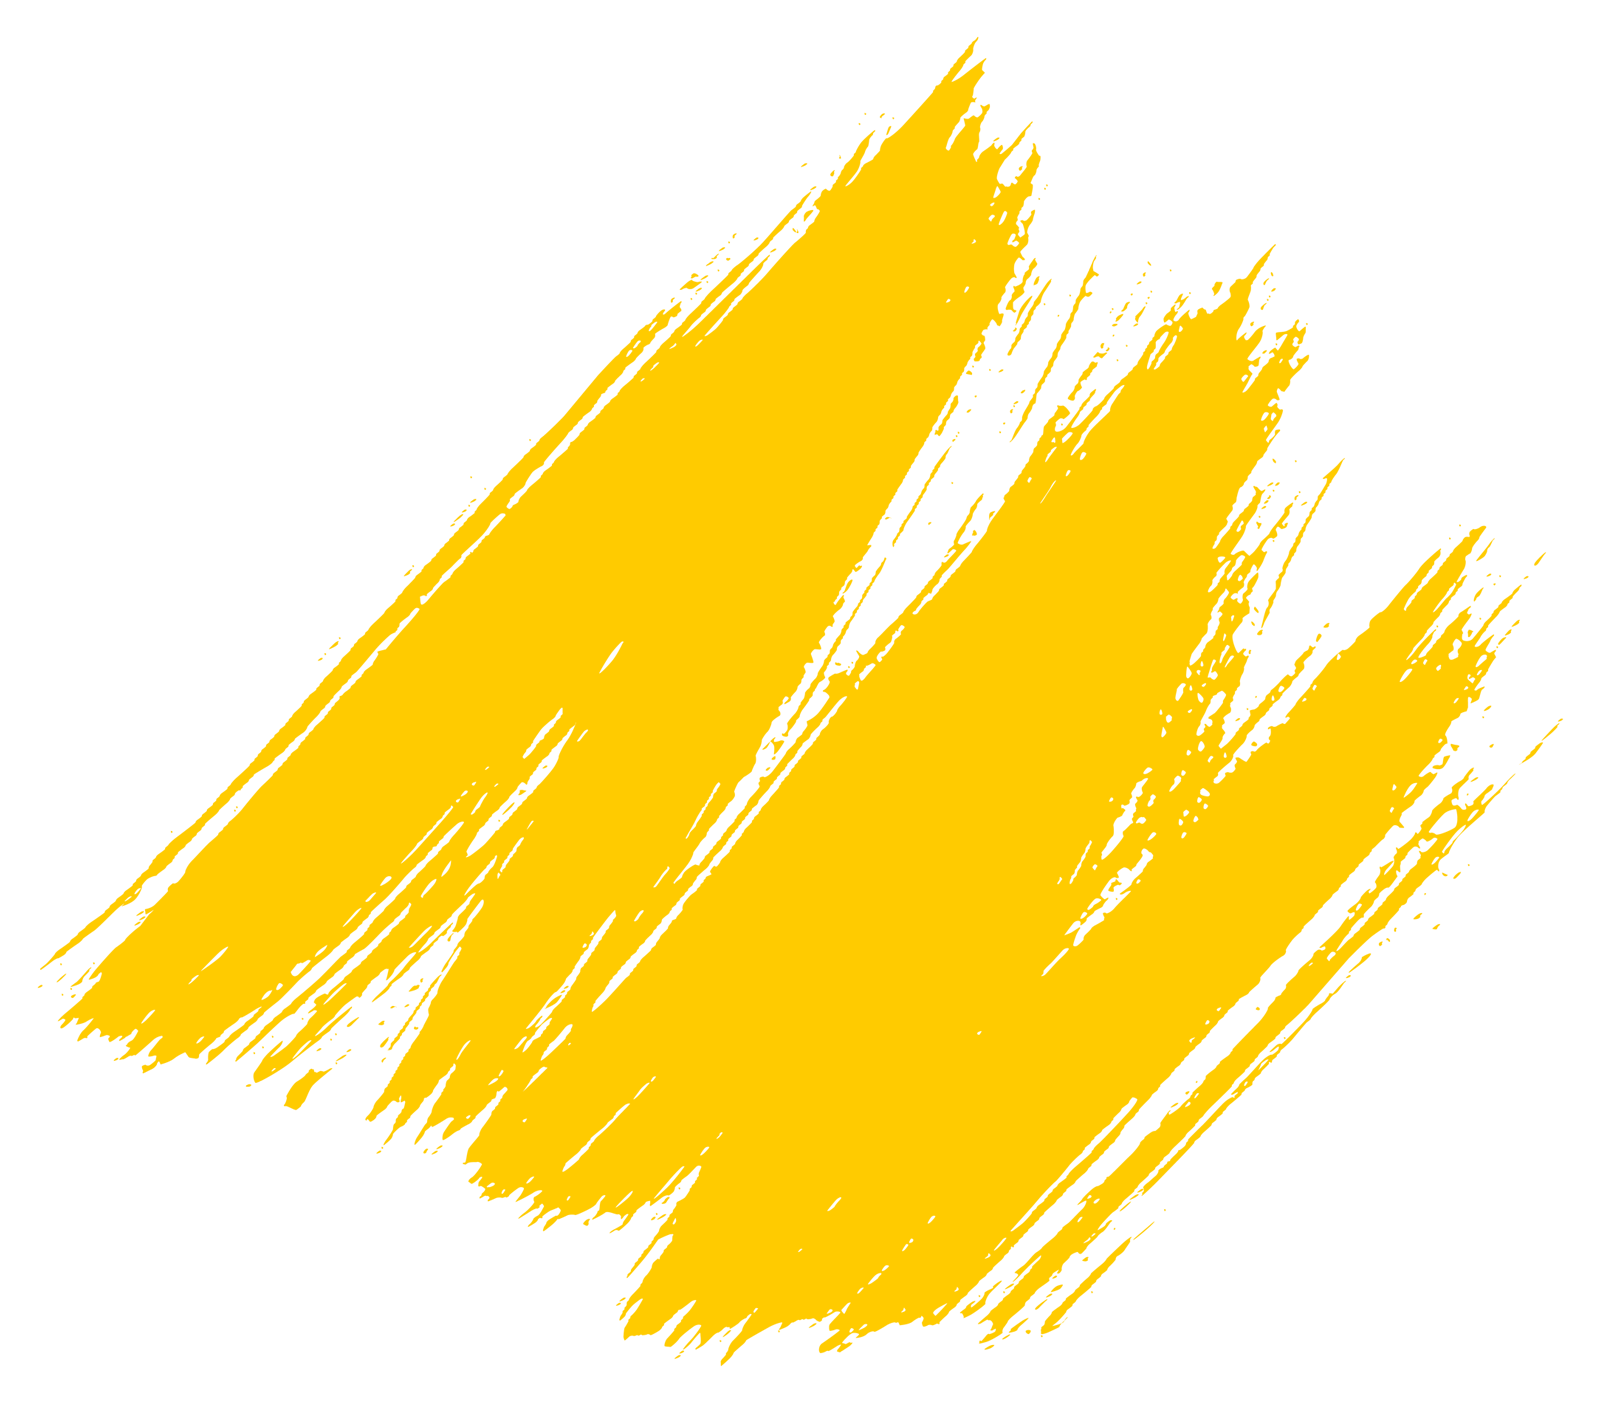 Gold paint stroke png. Yellow brush style free